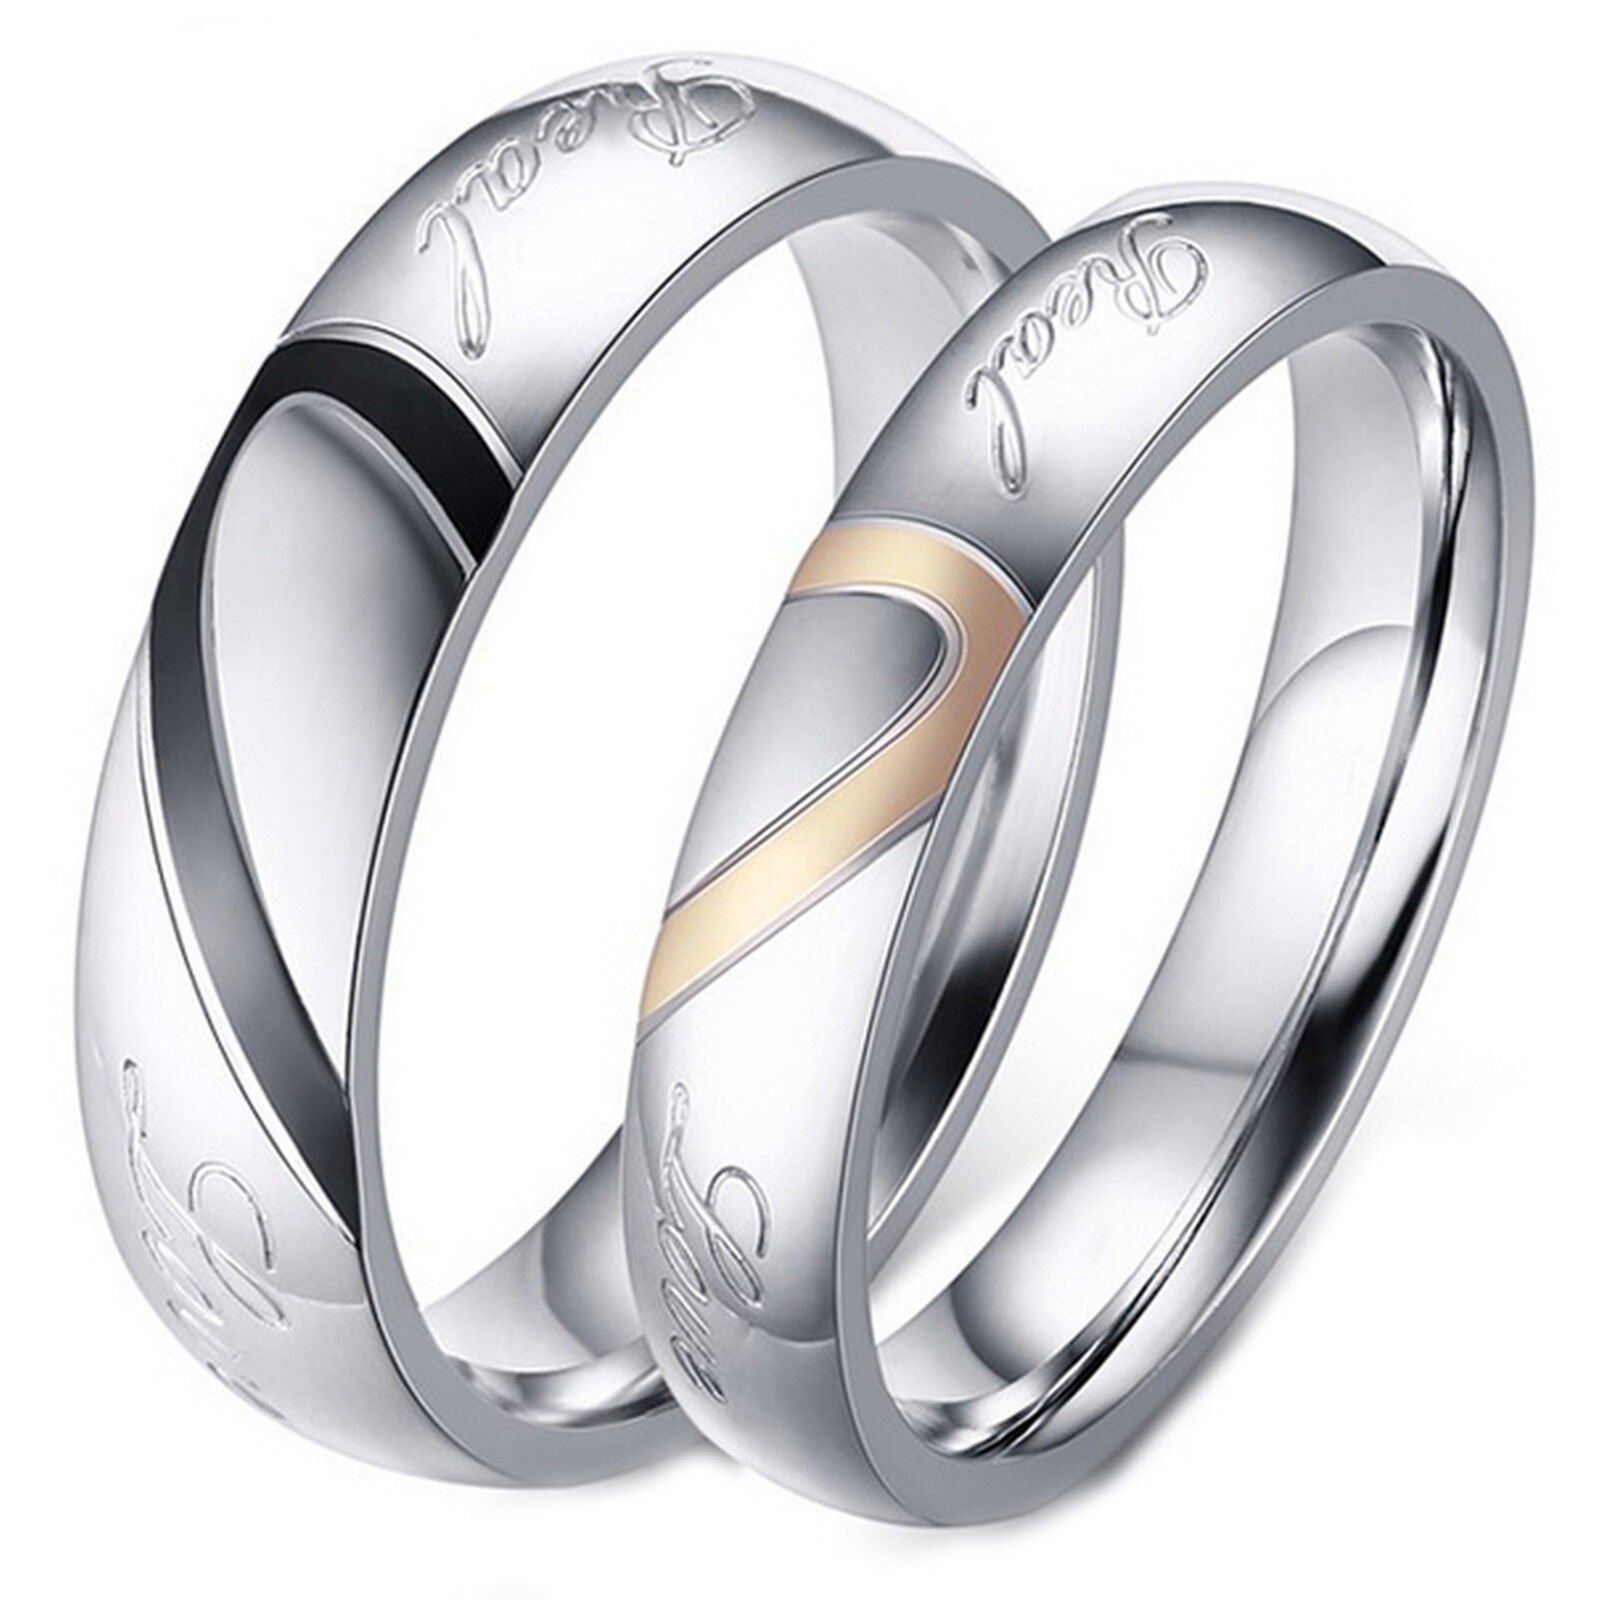 Couple's Matching Heart Ring, REAL Love His or Hers Wedding Band Promise Ring Fashion Jewelry